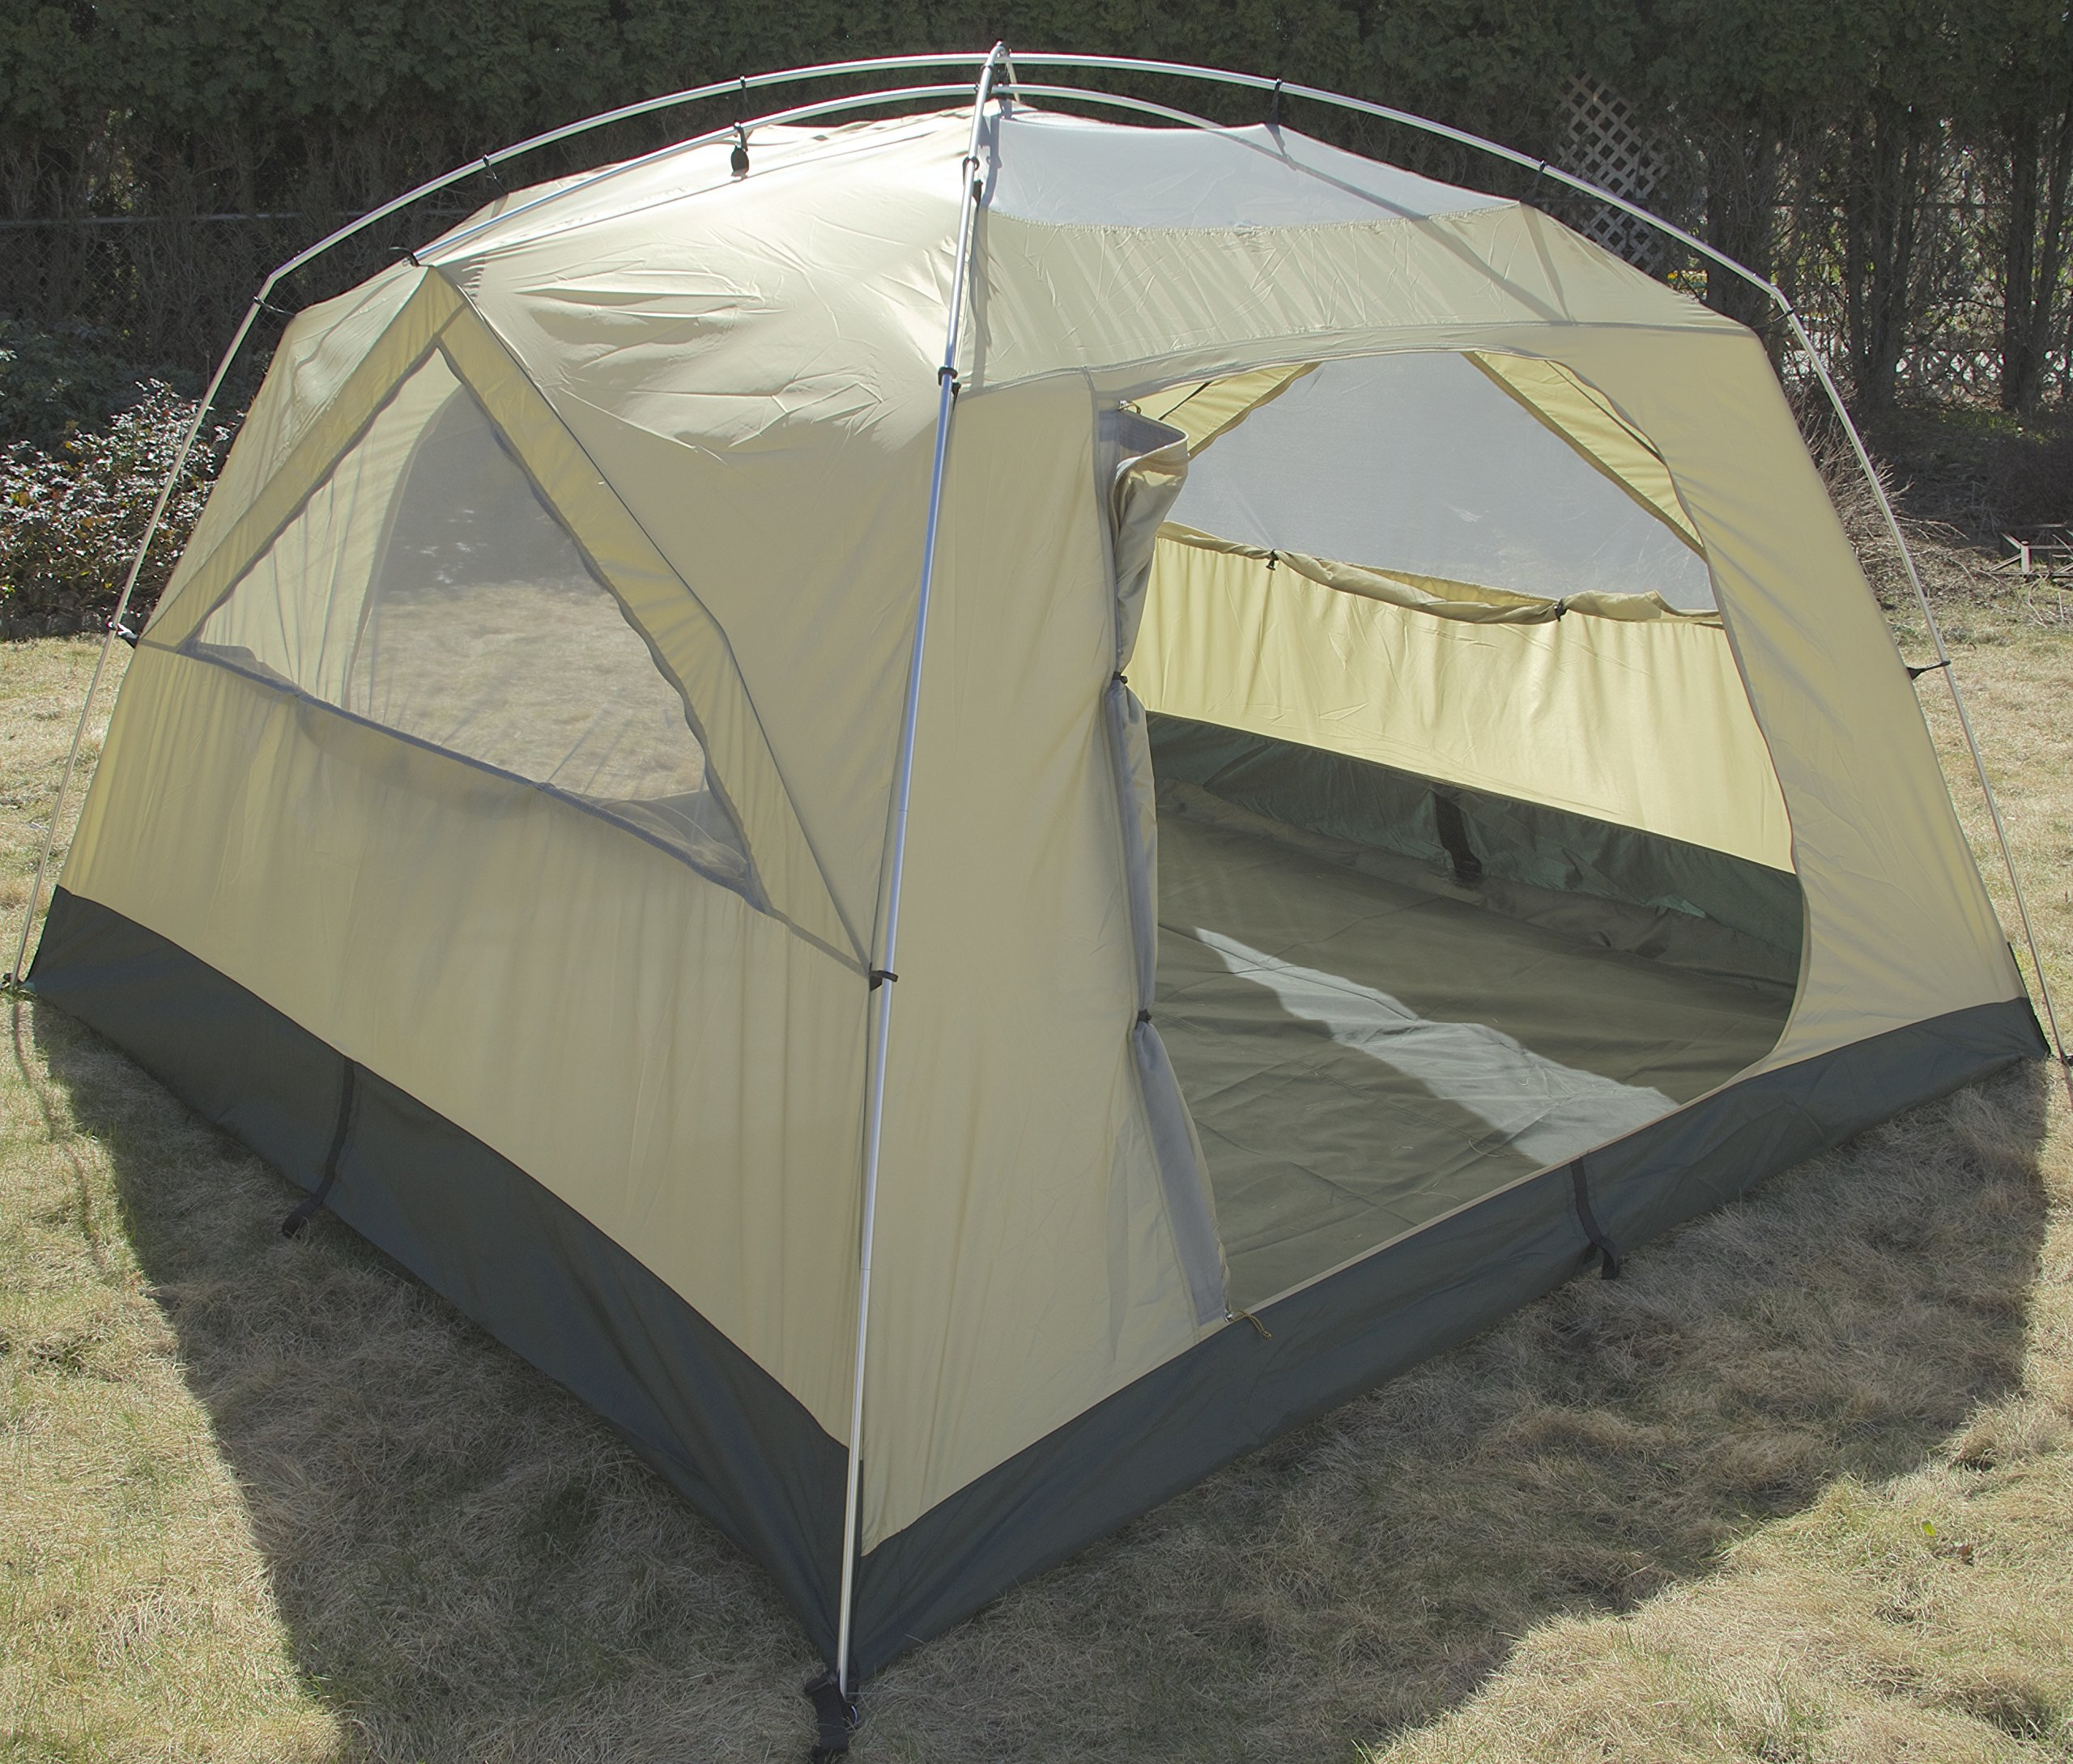 Camp Time Expedition Tent, Fast set-up, 100 square feet including vestibules, floor liner, awning poles, 7001-T6 aluminum, Designed for your cots-stools-tables,. by Camp Specialties (Image #3)